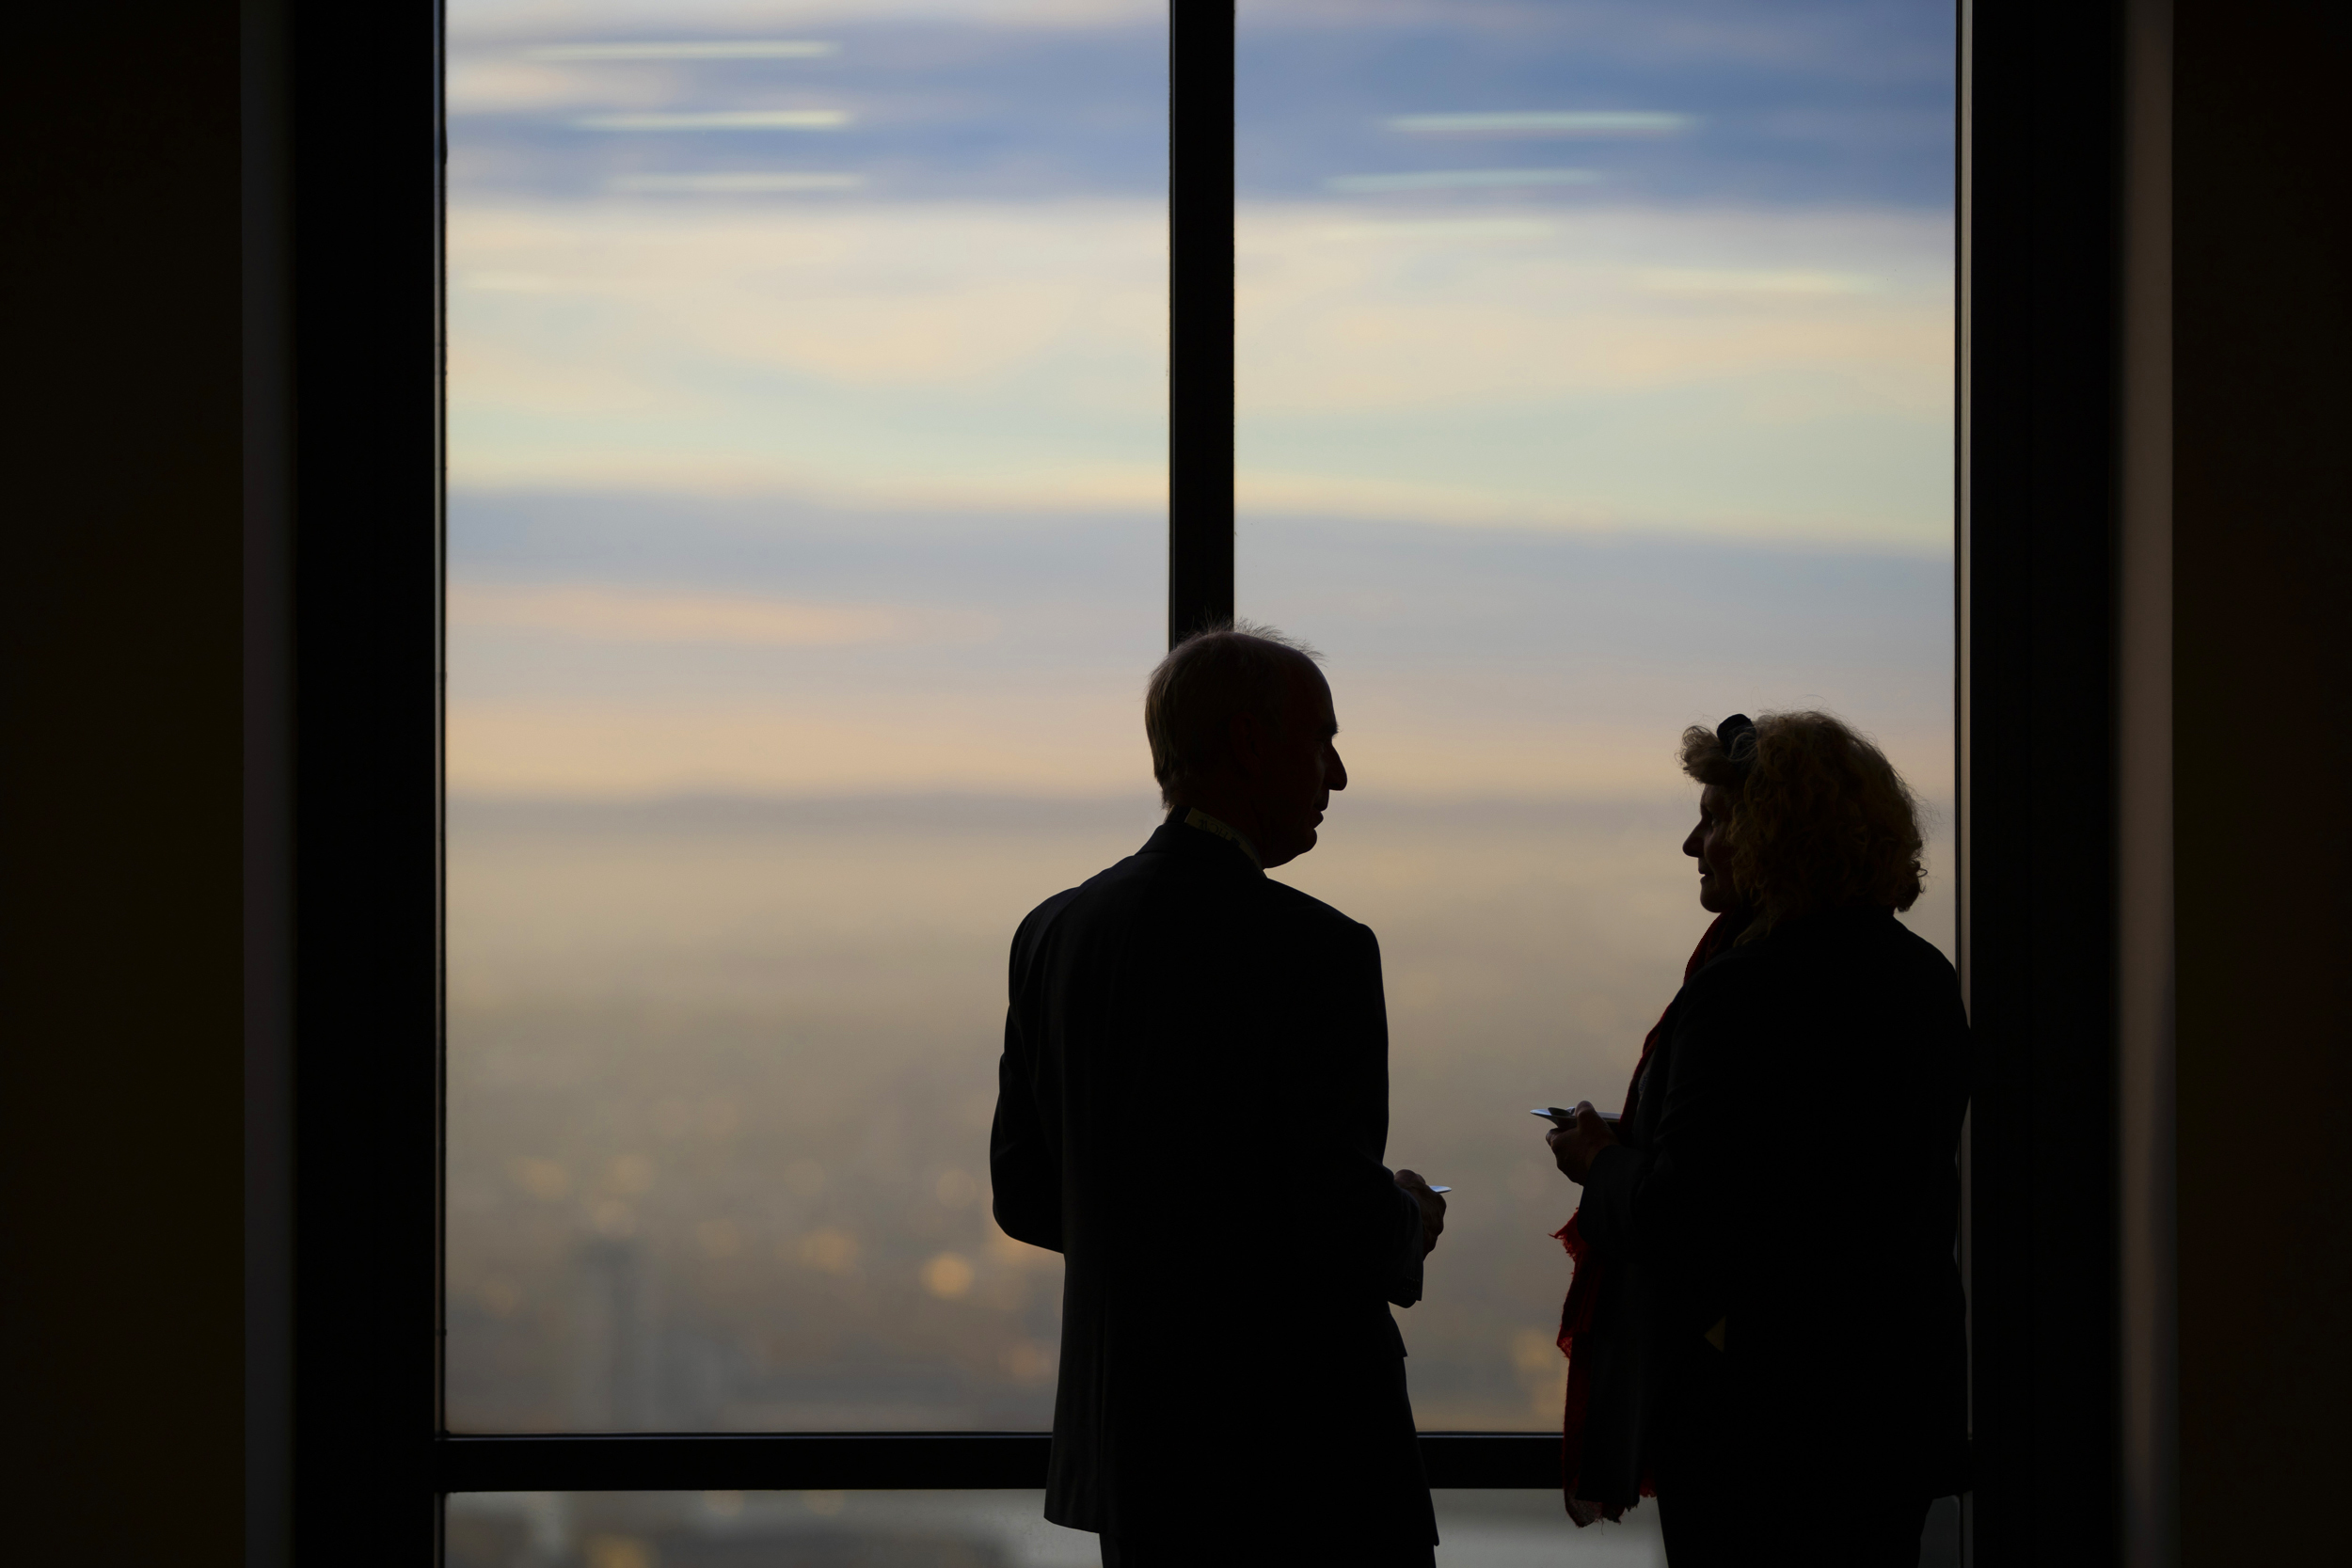 Silhouettes of two people at the OBN BioSeed event in London